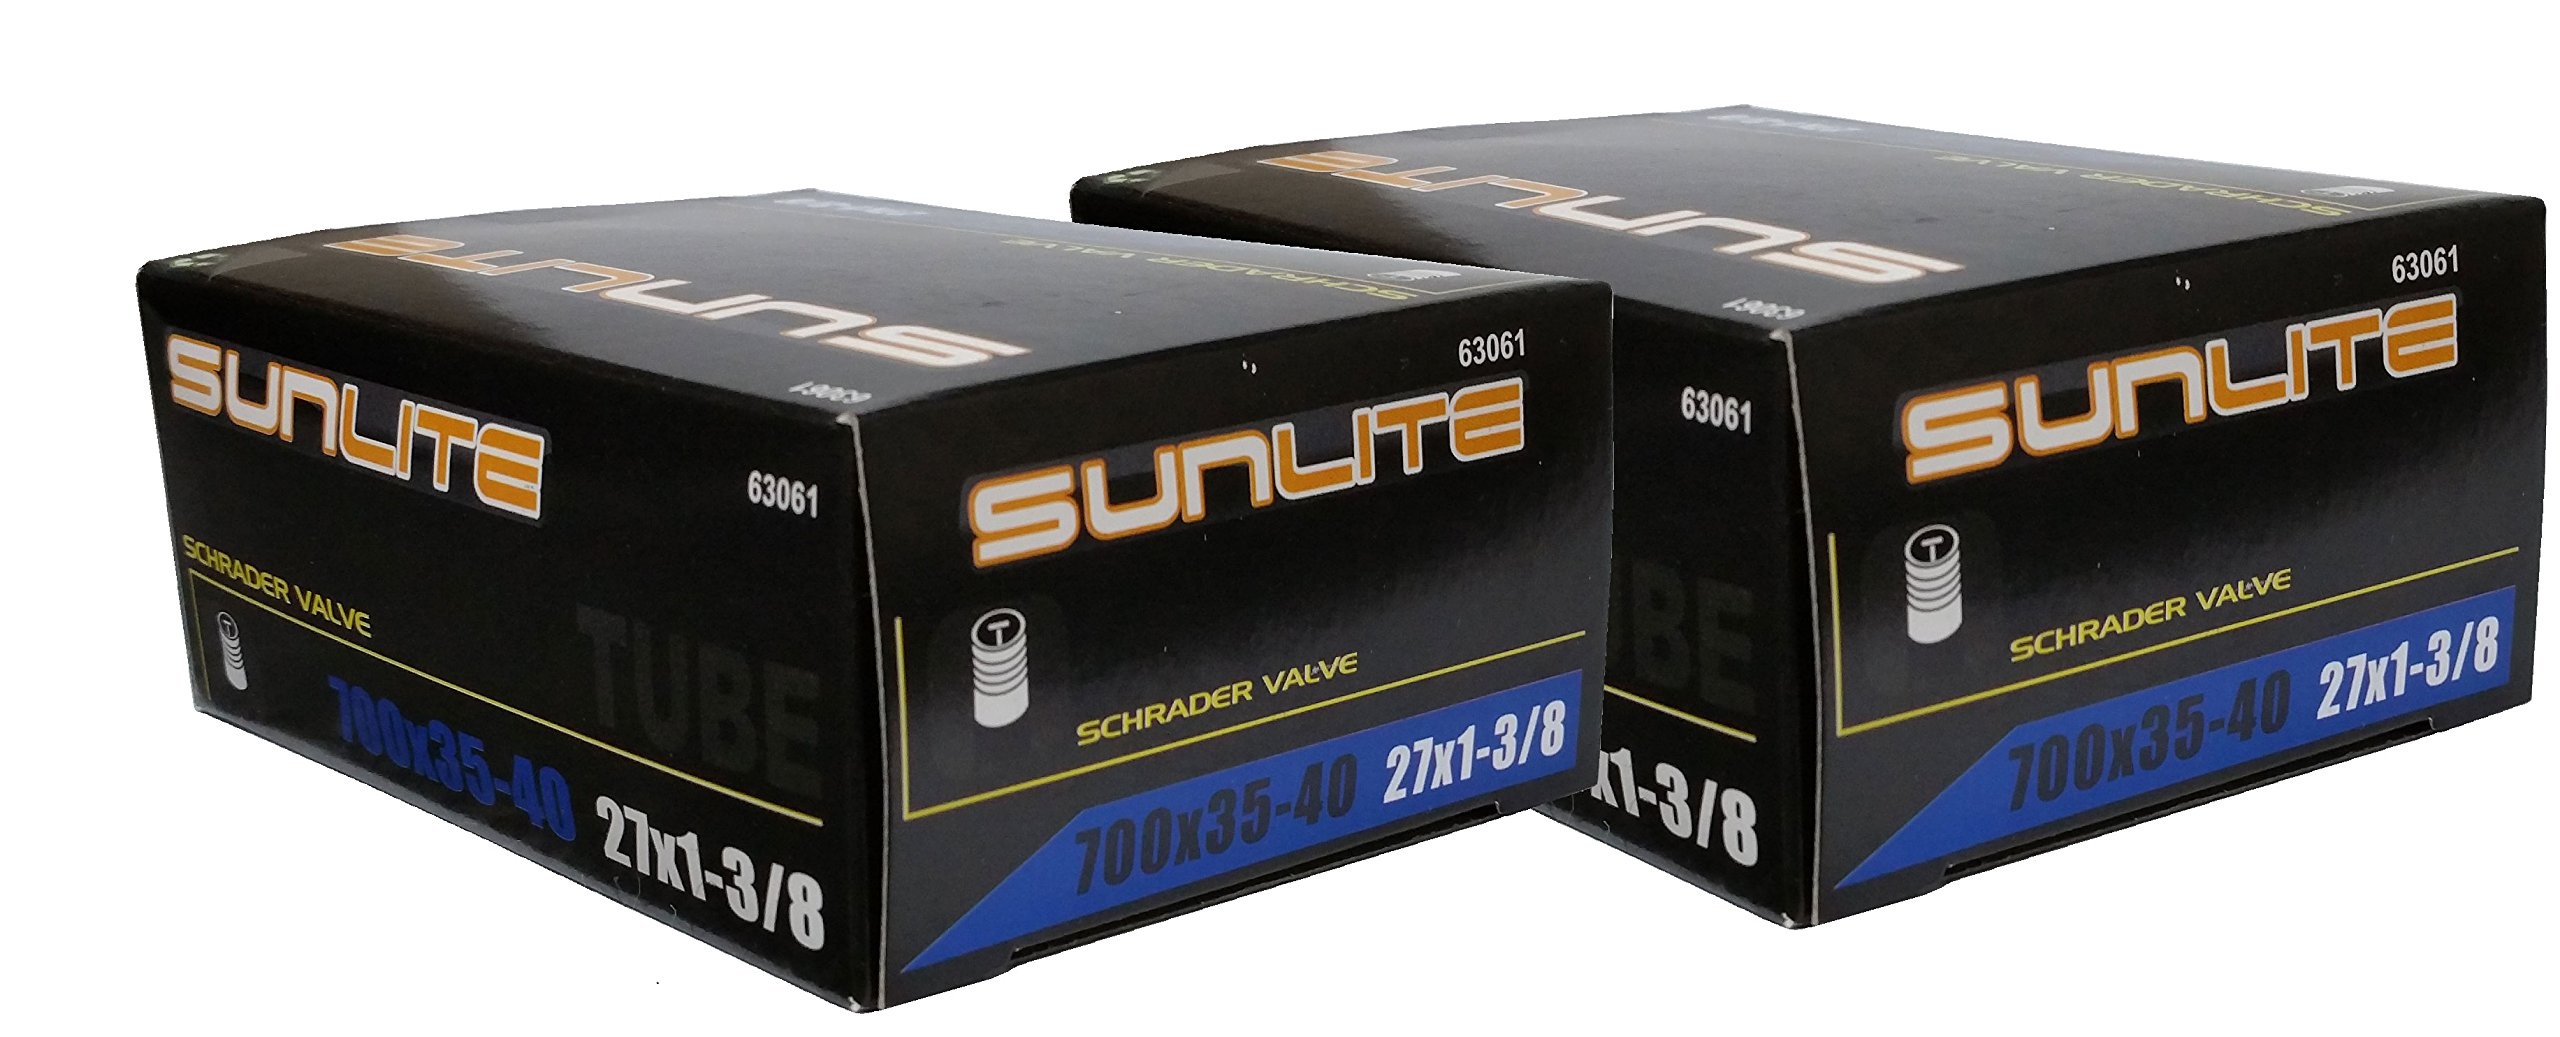 Street Fit 360 2 Pack - Tube, 700 x 35-40 (27 x 1-3/8) Schrader Valve 32mm, Sunlite by Street Fit 360